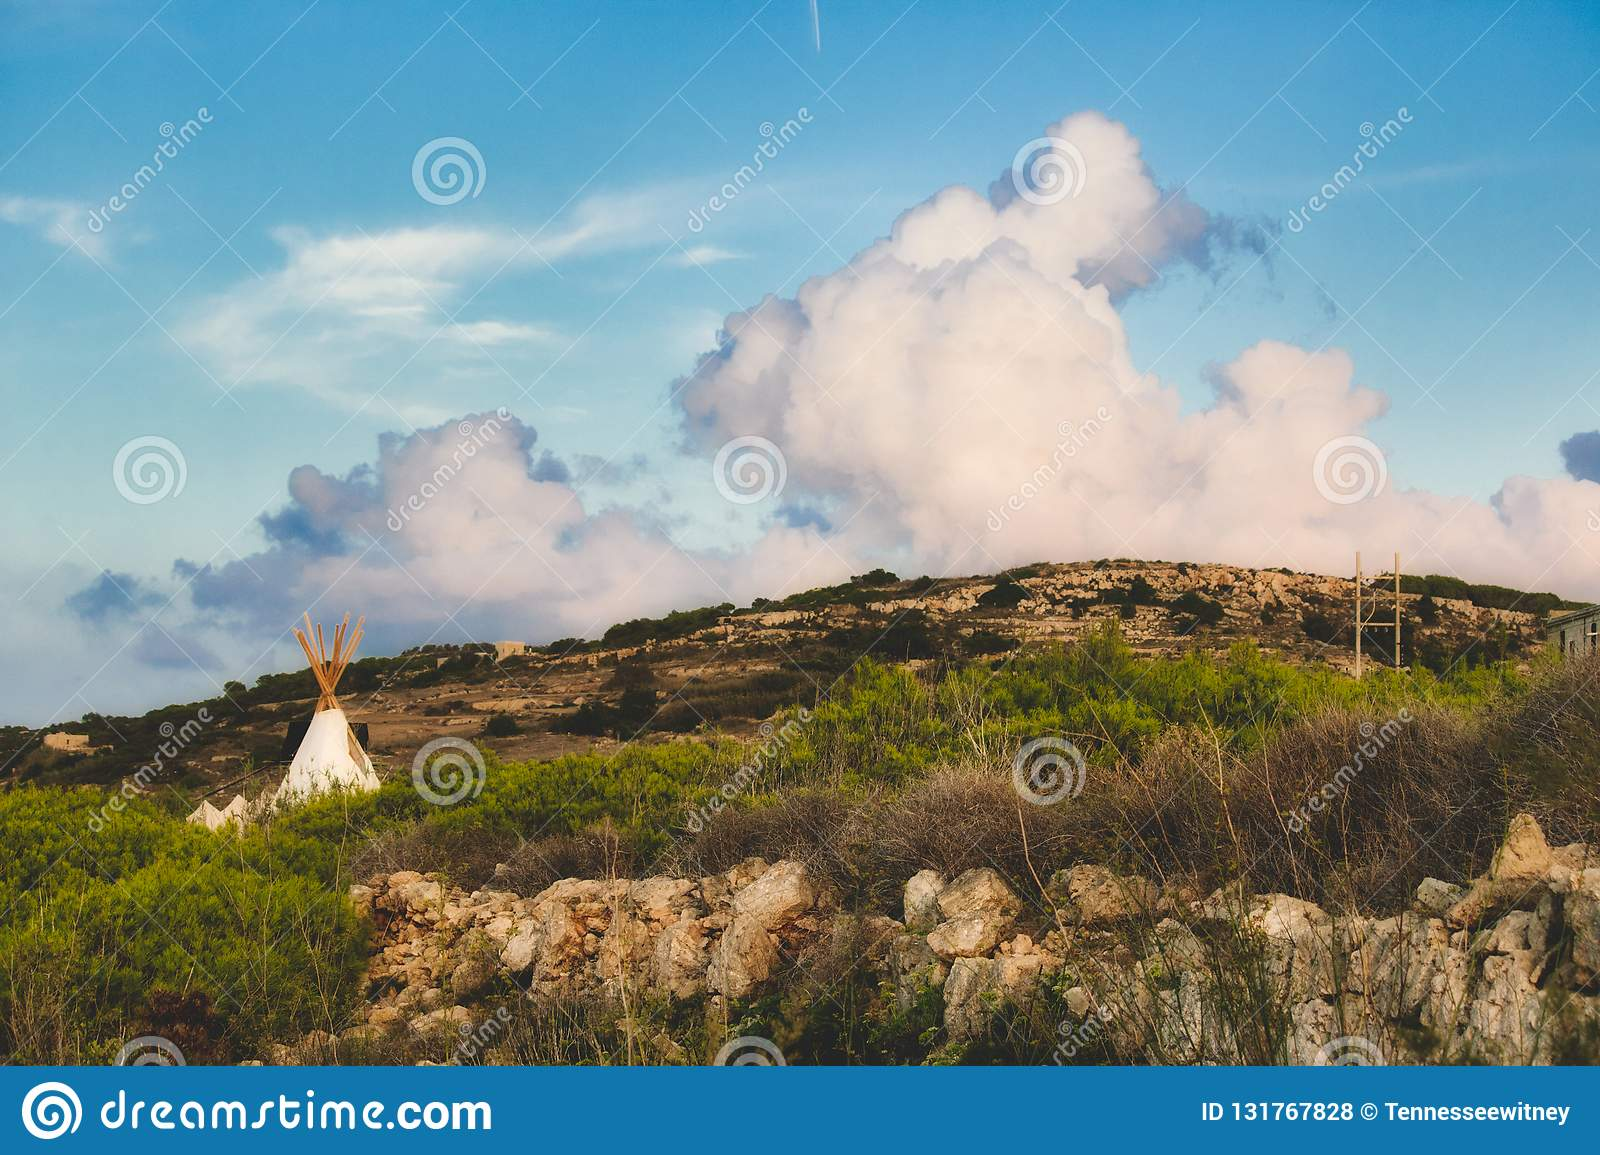 White canvas teepee camped in a field under a cloudy blue sky